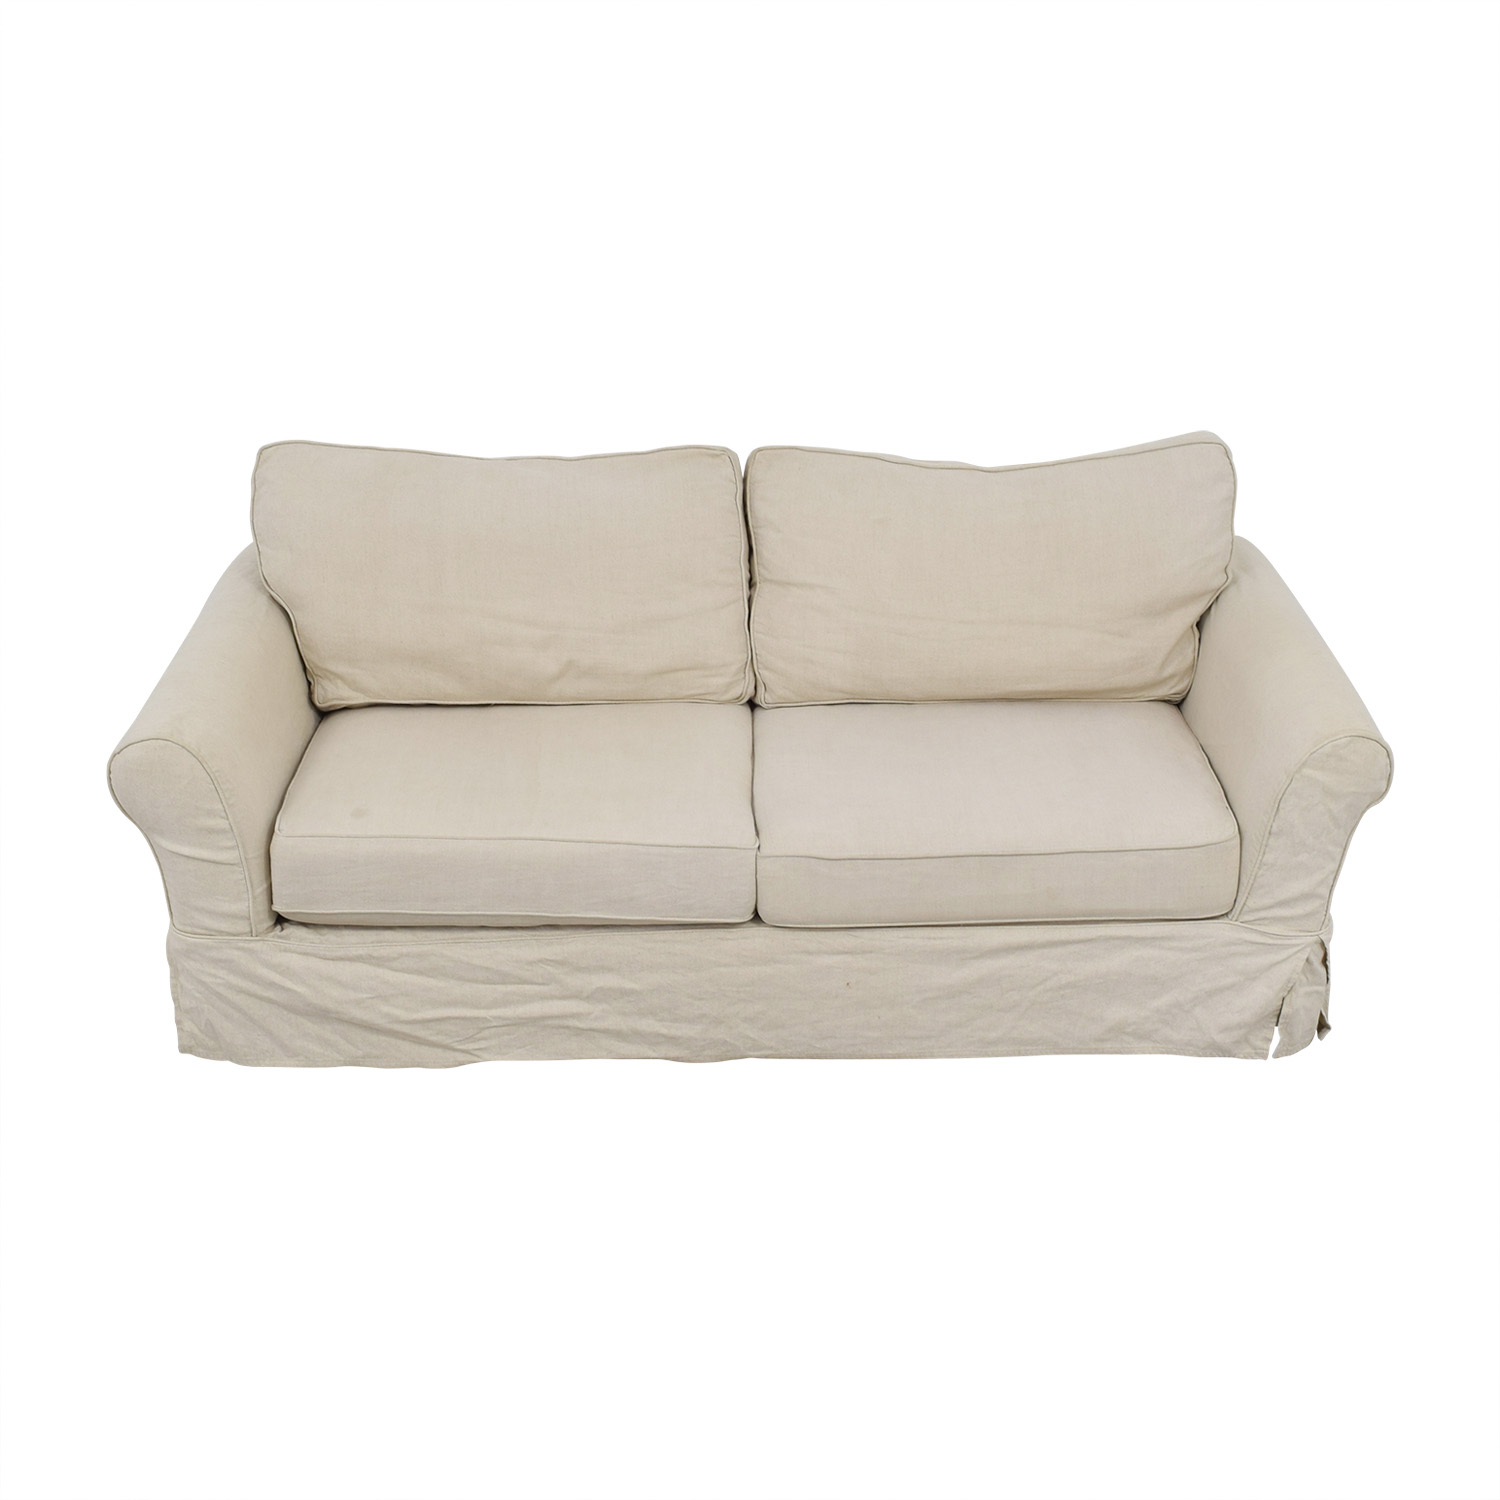 Pottery Barn Pottery Barn Cream Comfort Roll Two-Cushion Sofa price